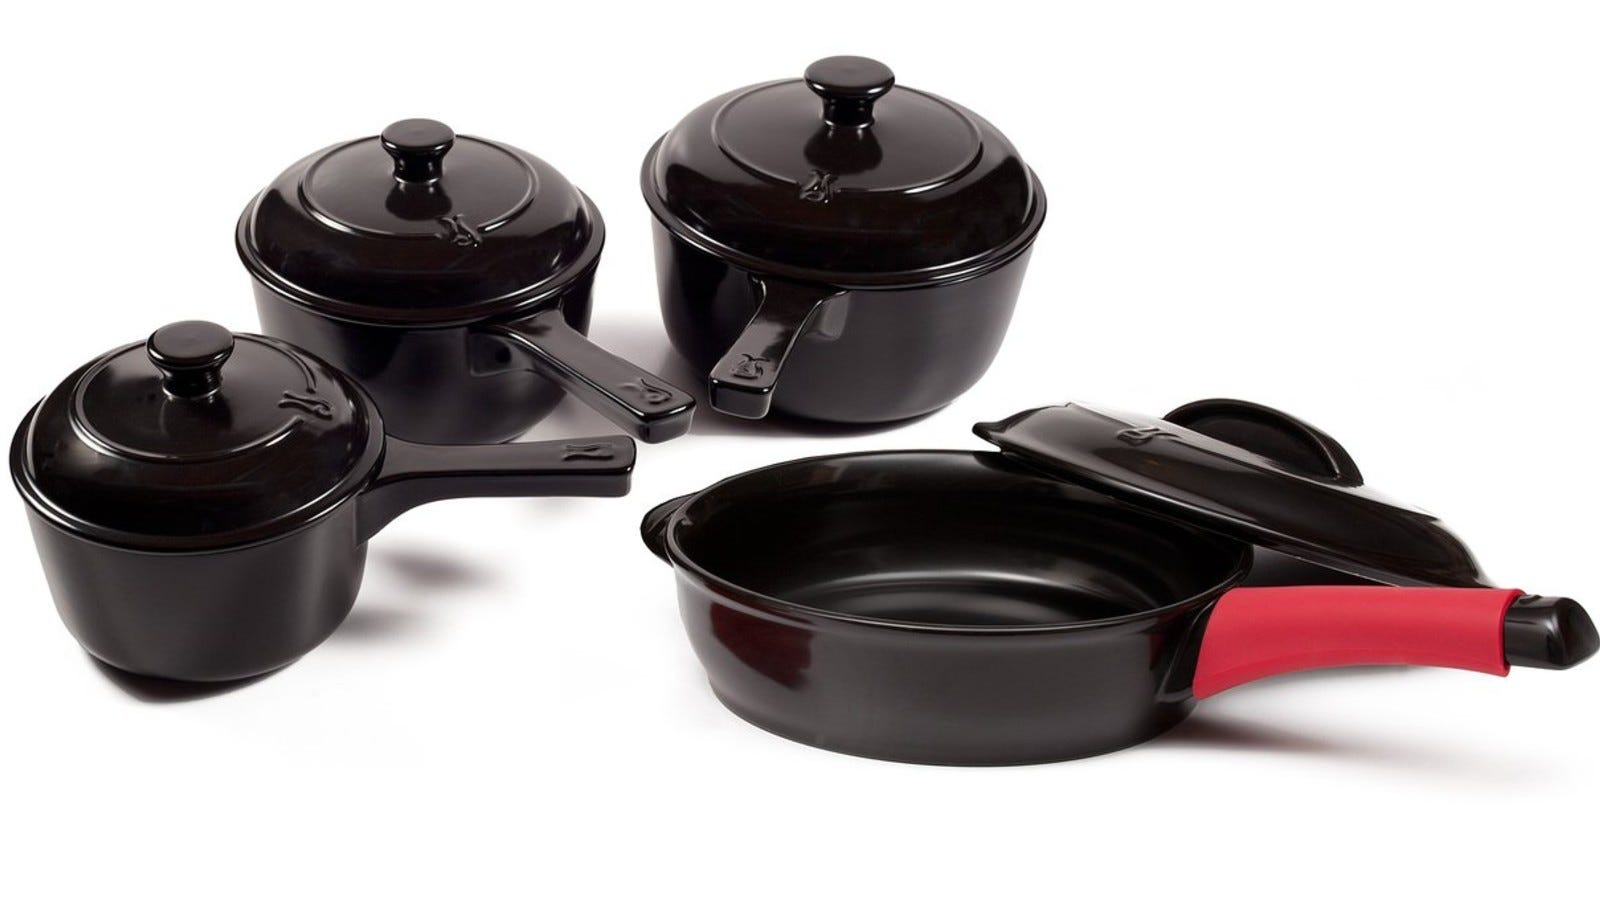 A black ceramic cookware set.